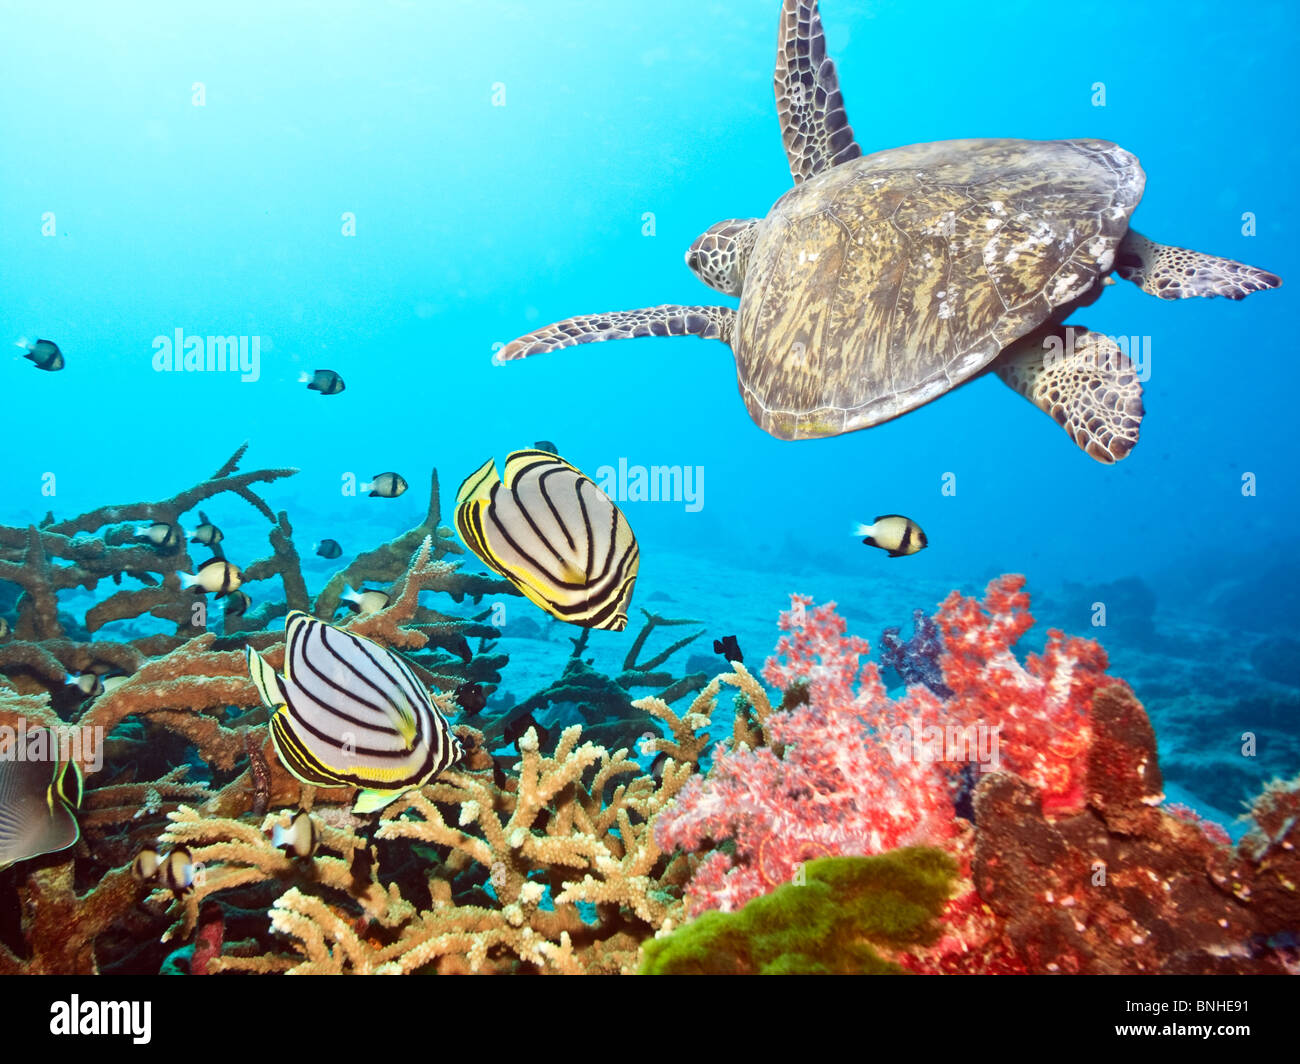 Underwater landscape with couple of Butterflyfishes and turtle - Stock Image